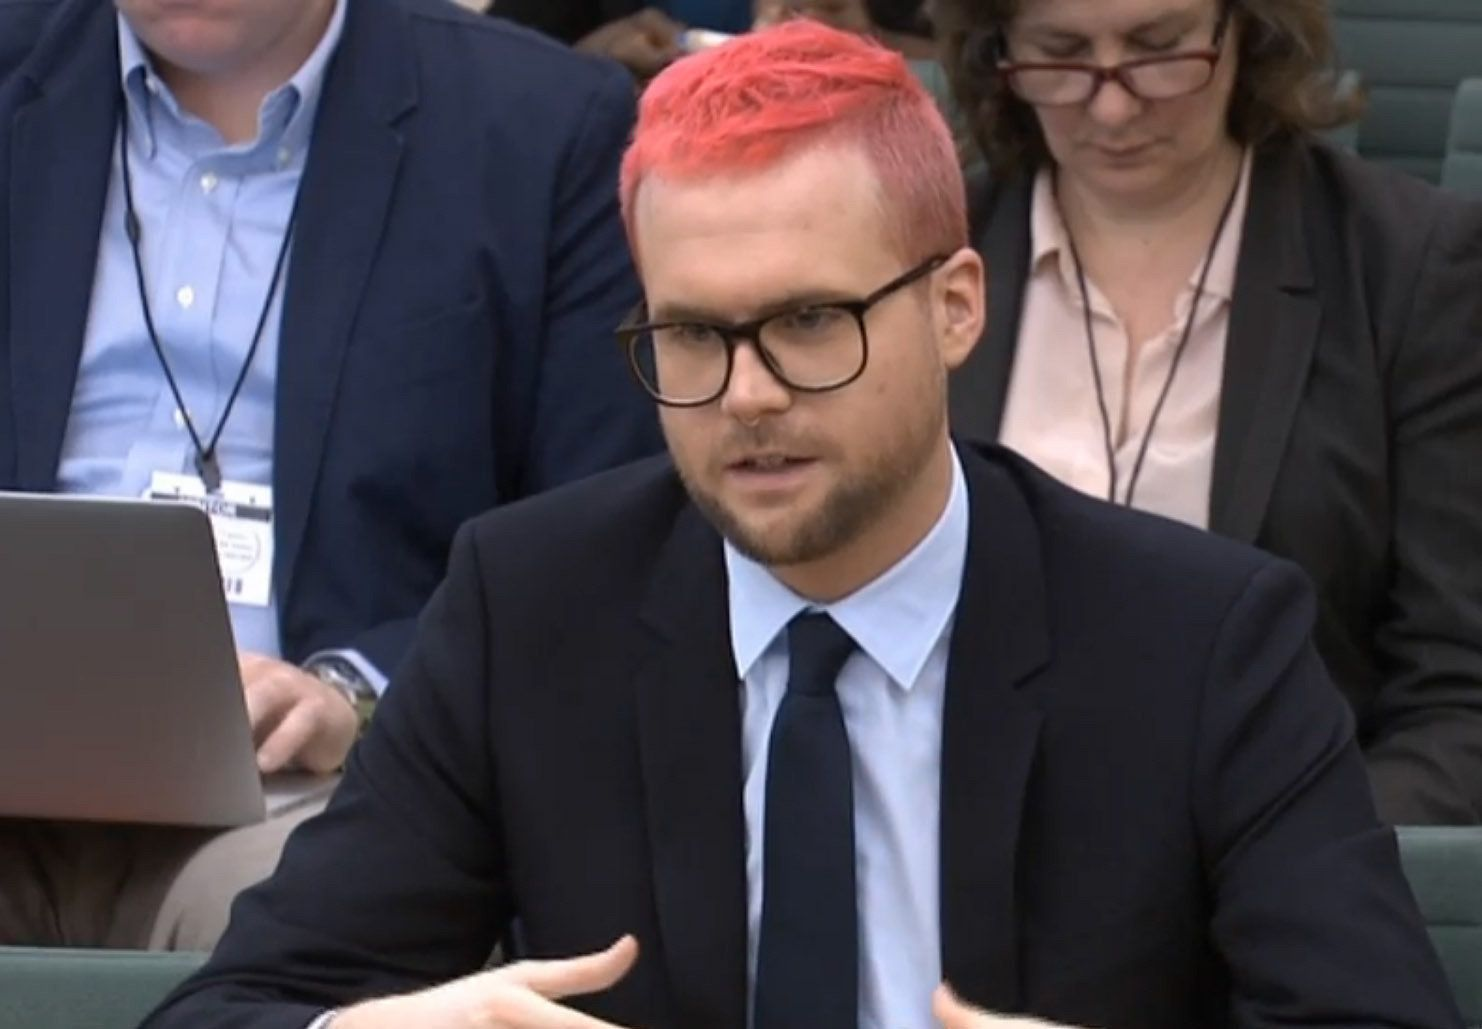 Christopher Wylie Claims It's Possible Facebook Could Be Listening To